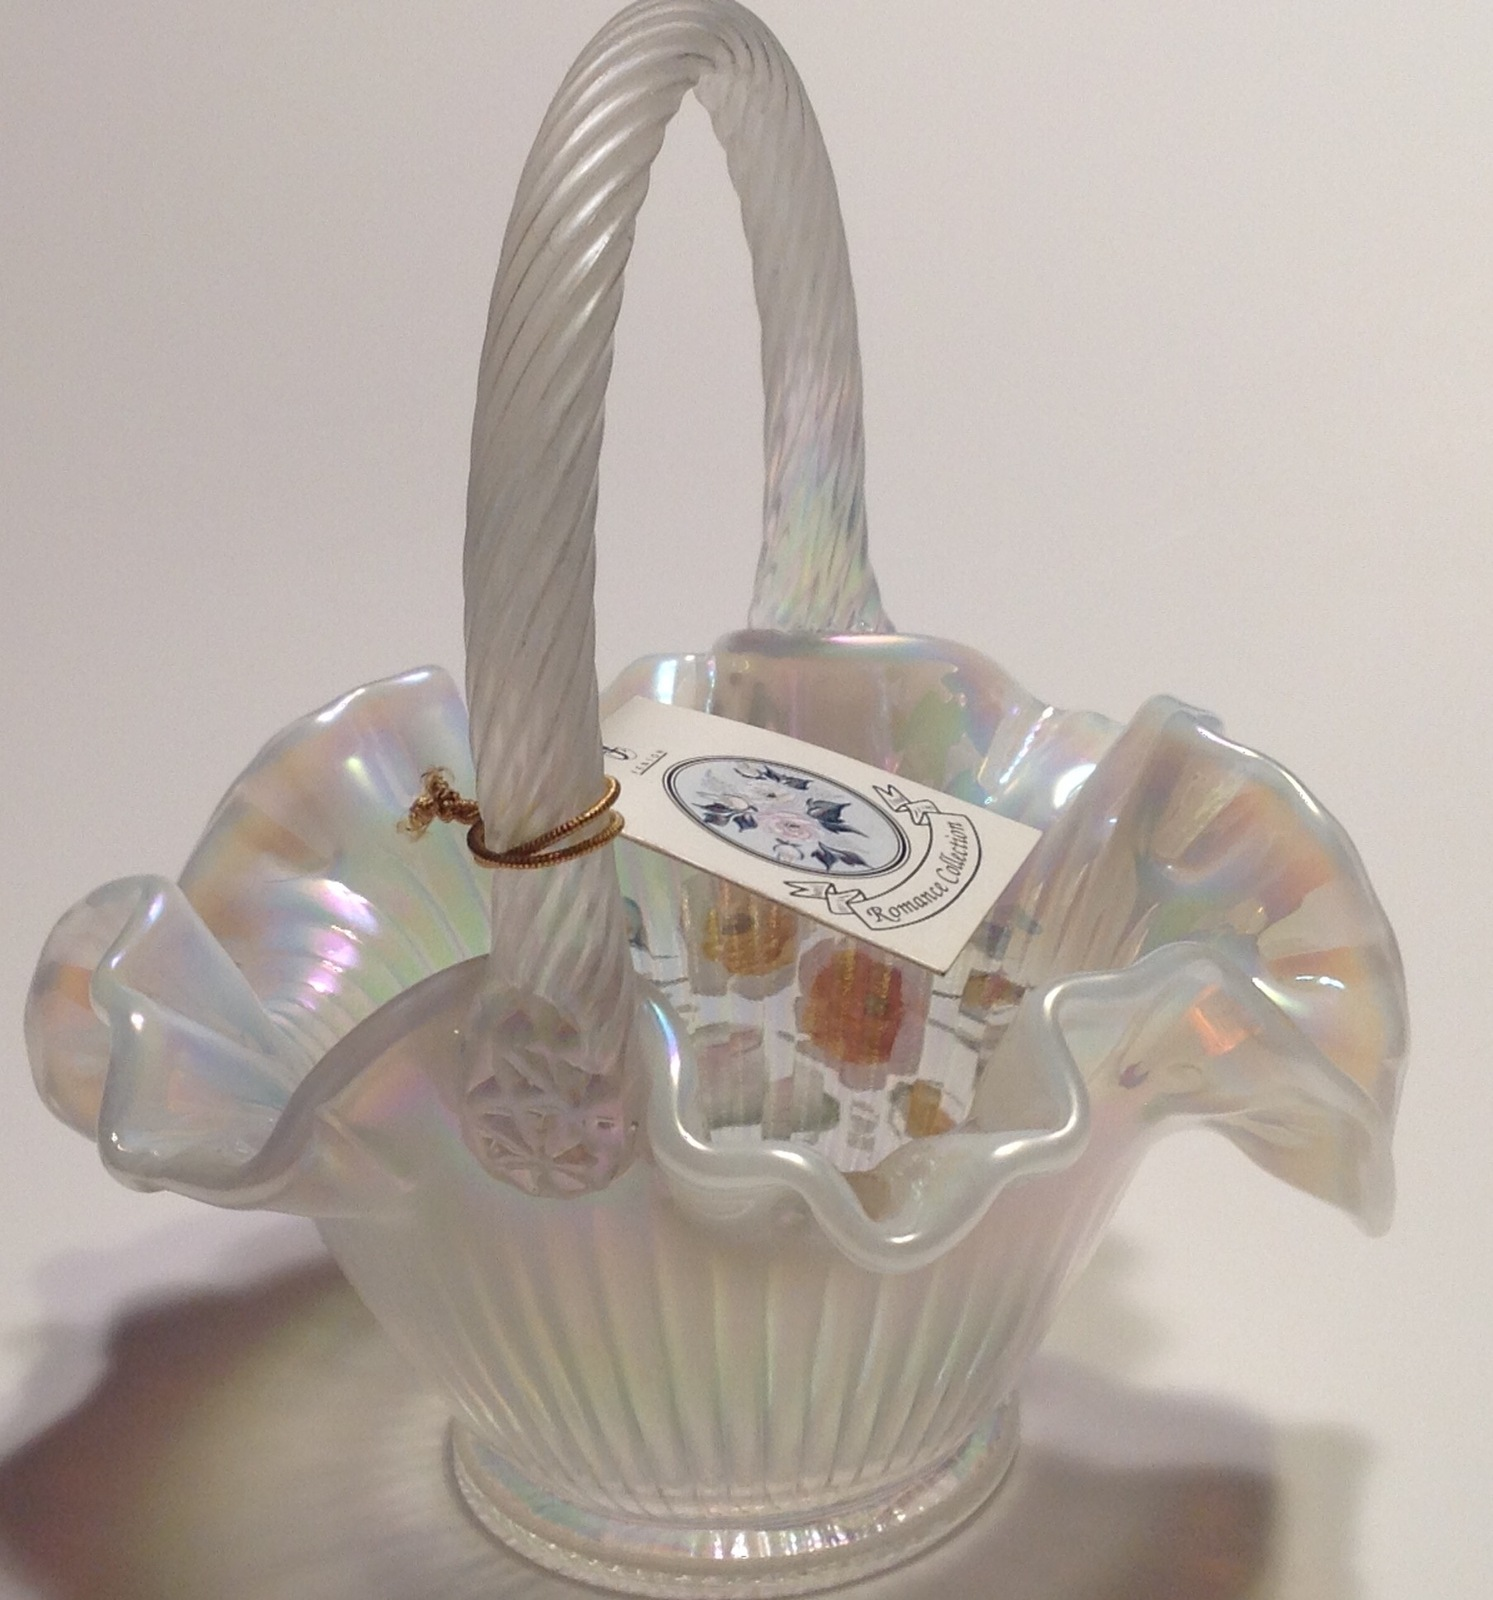 Fenton Opalescent Glass Basket Artist Signed Mackay Hand Painted image 3